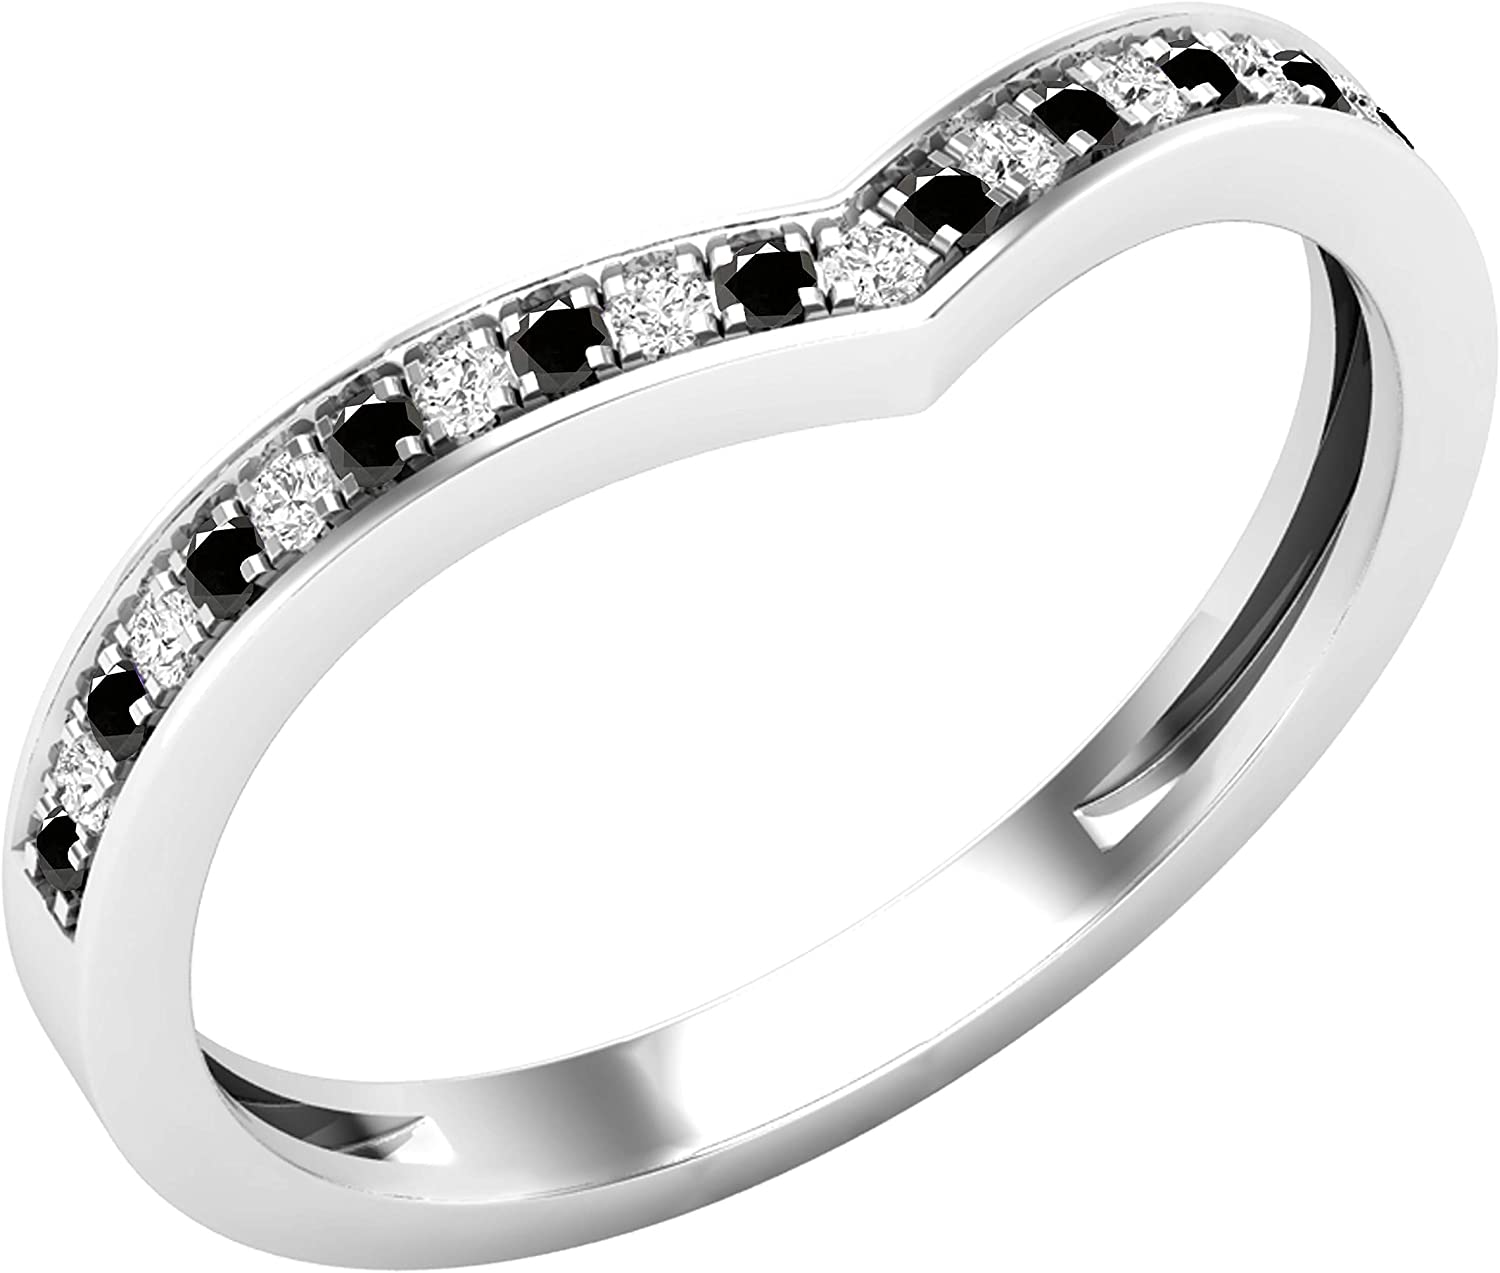 Dazzlingrock Animer and price National products revision Collection Round Gemstone Br White Diamond Ladies